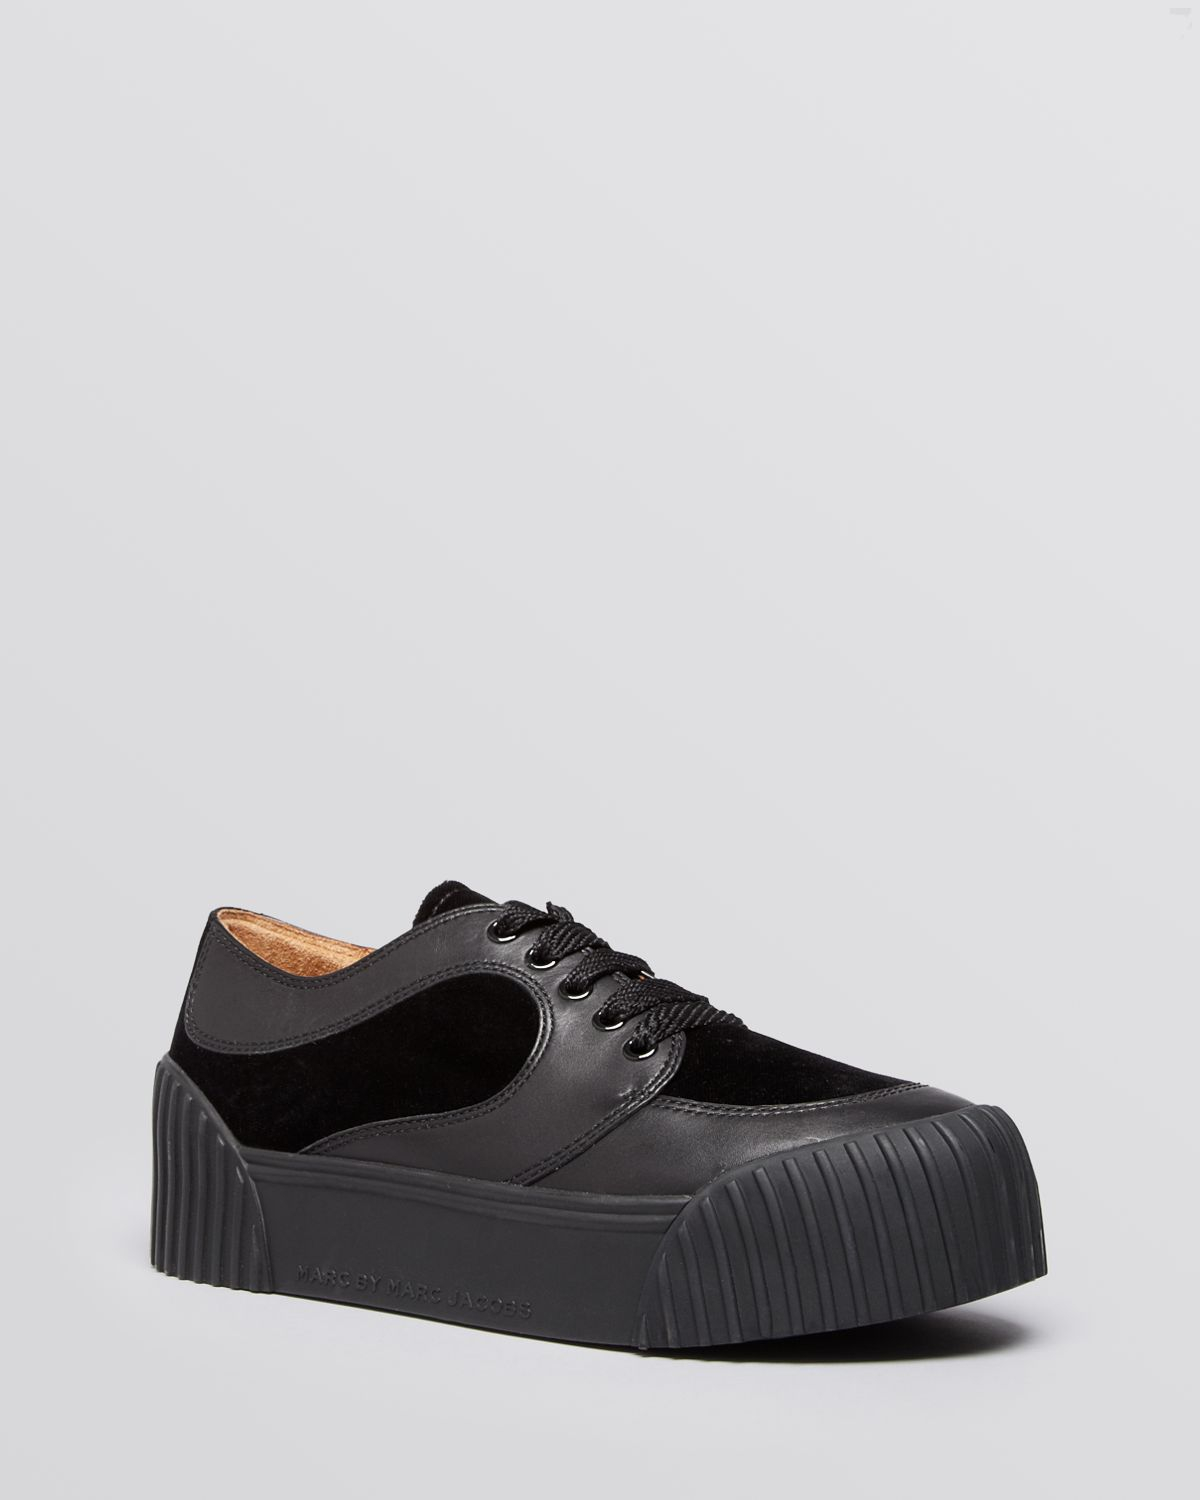 superior quality b737f 4aac4 Marc By Marc Jacobs Lace Up Platform Creeper Sneakers ...